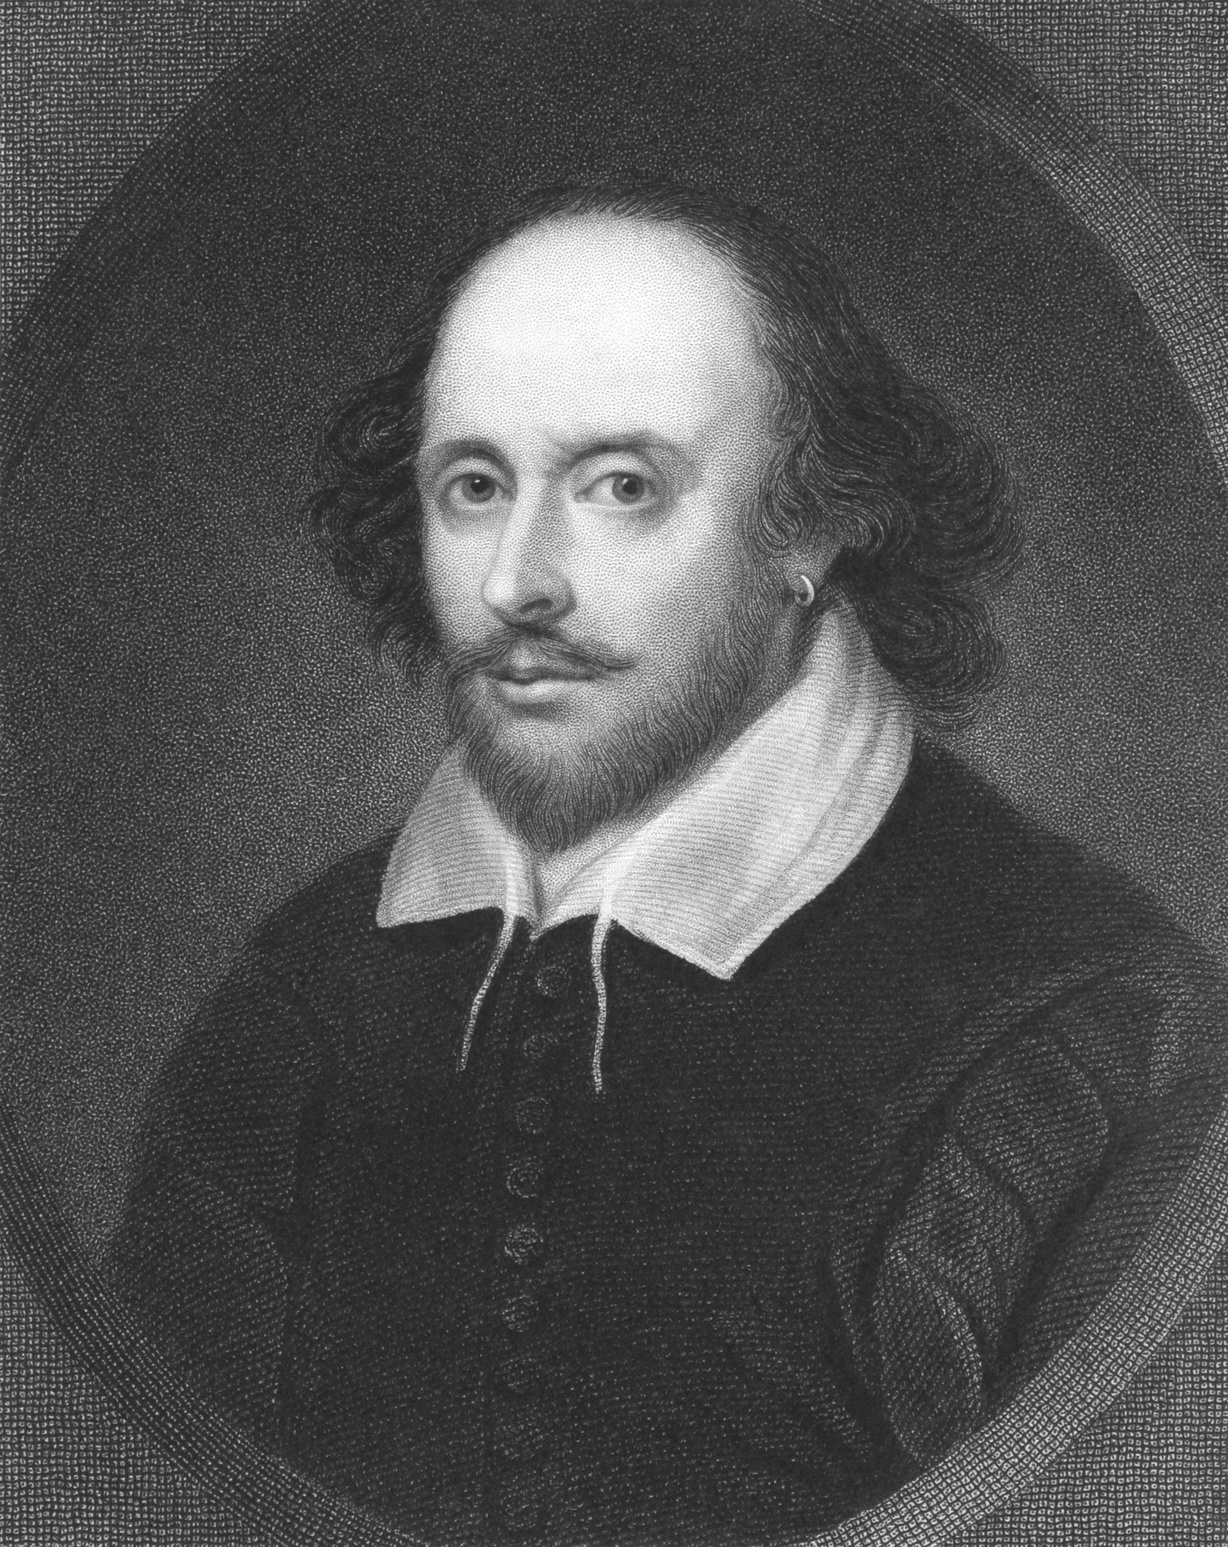 A William Shakespeare Poster